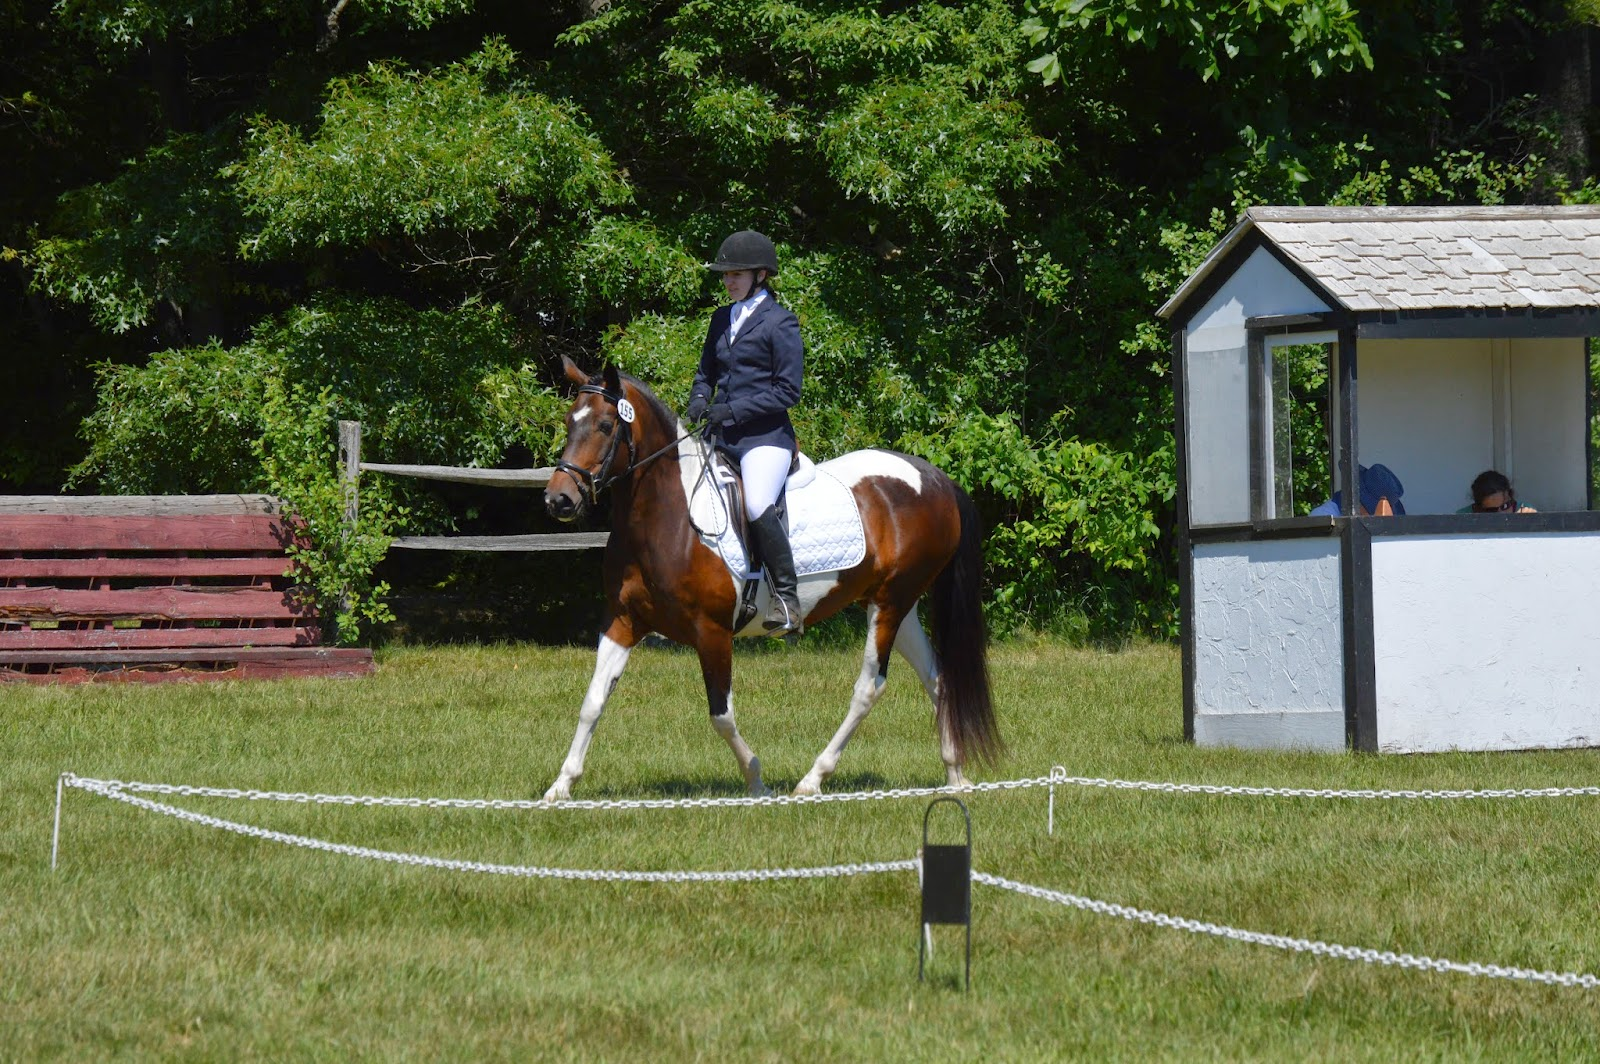 Groton House Farm Summer Classic dressage schooling June 2014